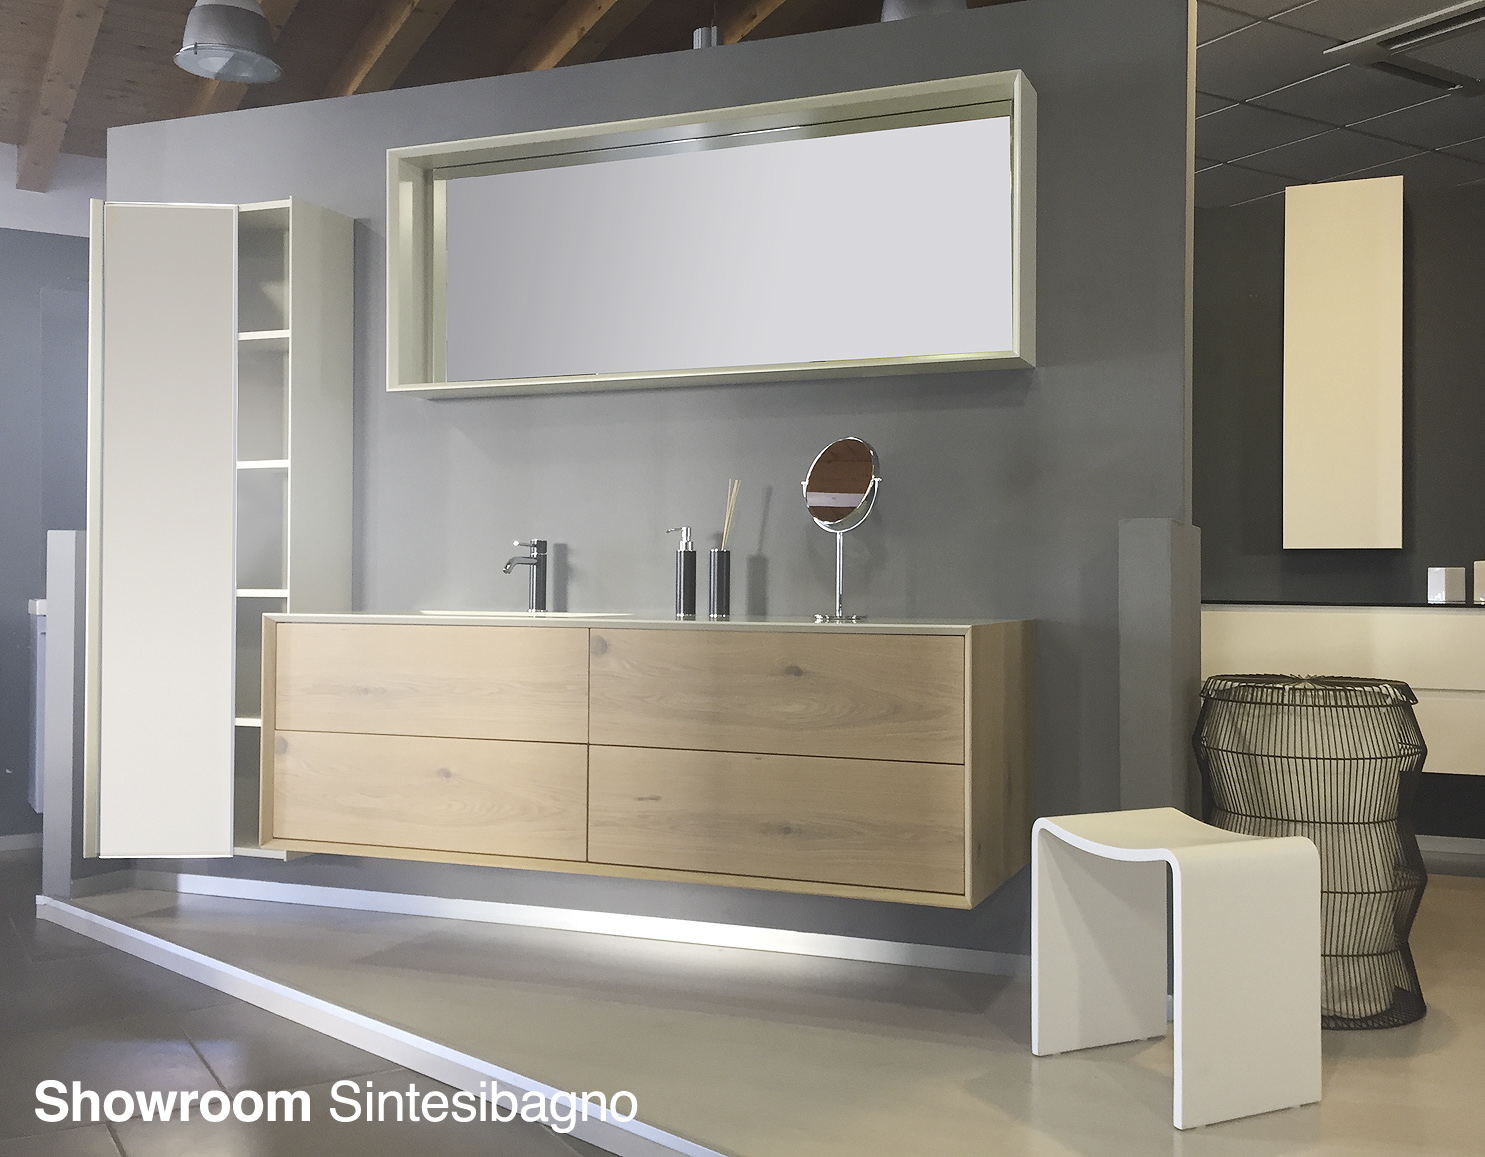 SINTESIBAGNO SHOWROOM VERBANIA